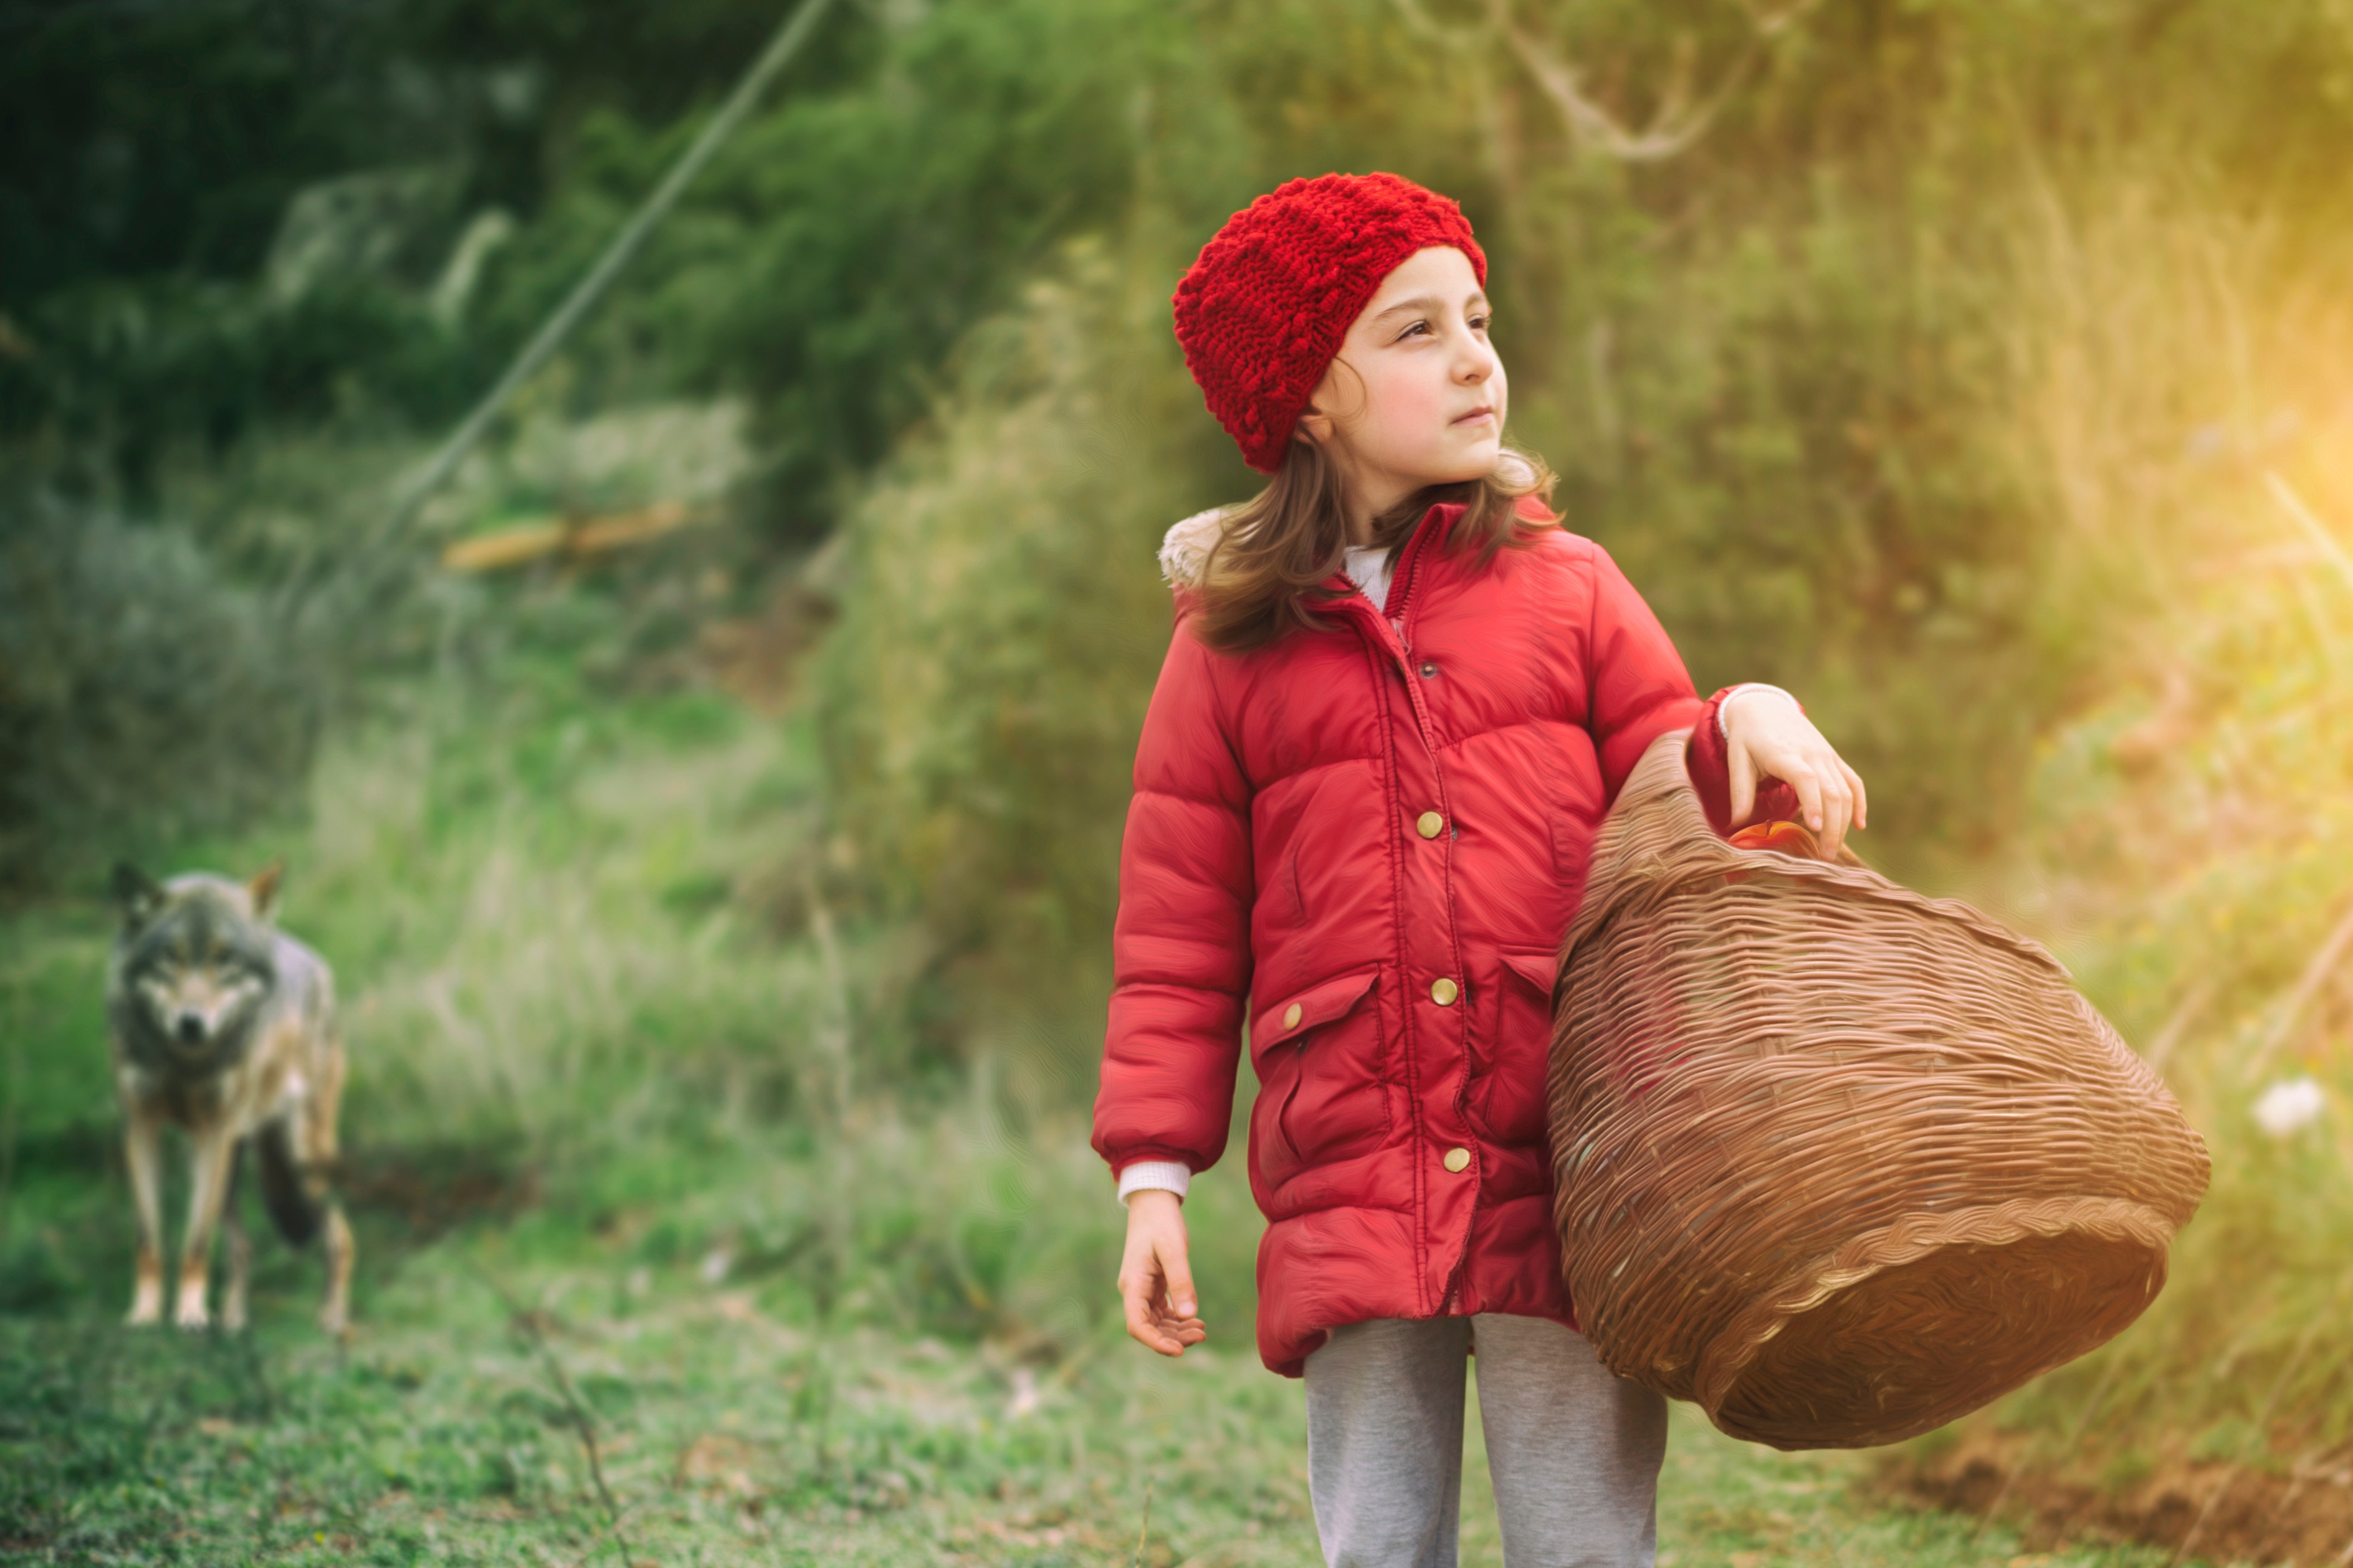 language learning story, little red riding hood, wolf